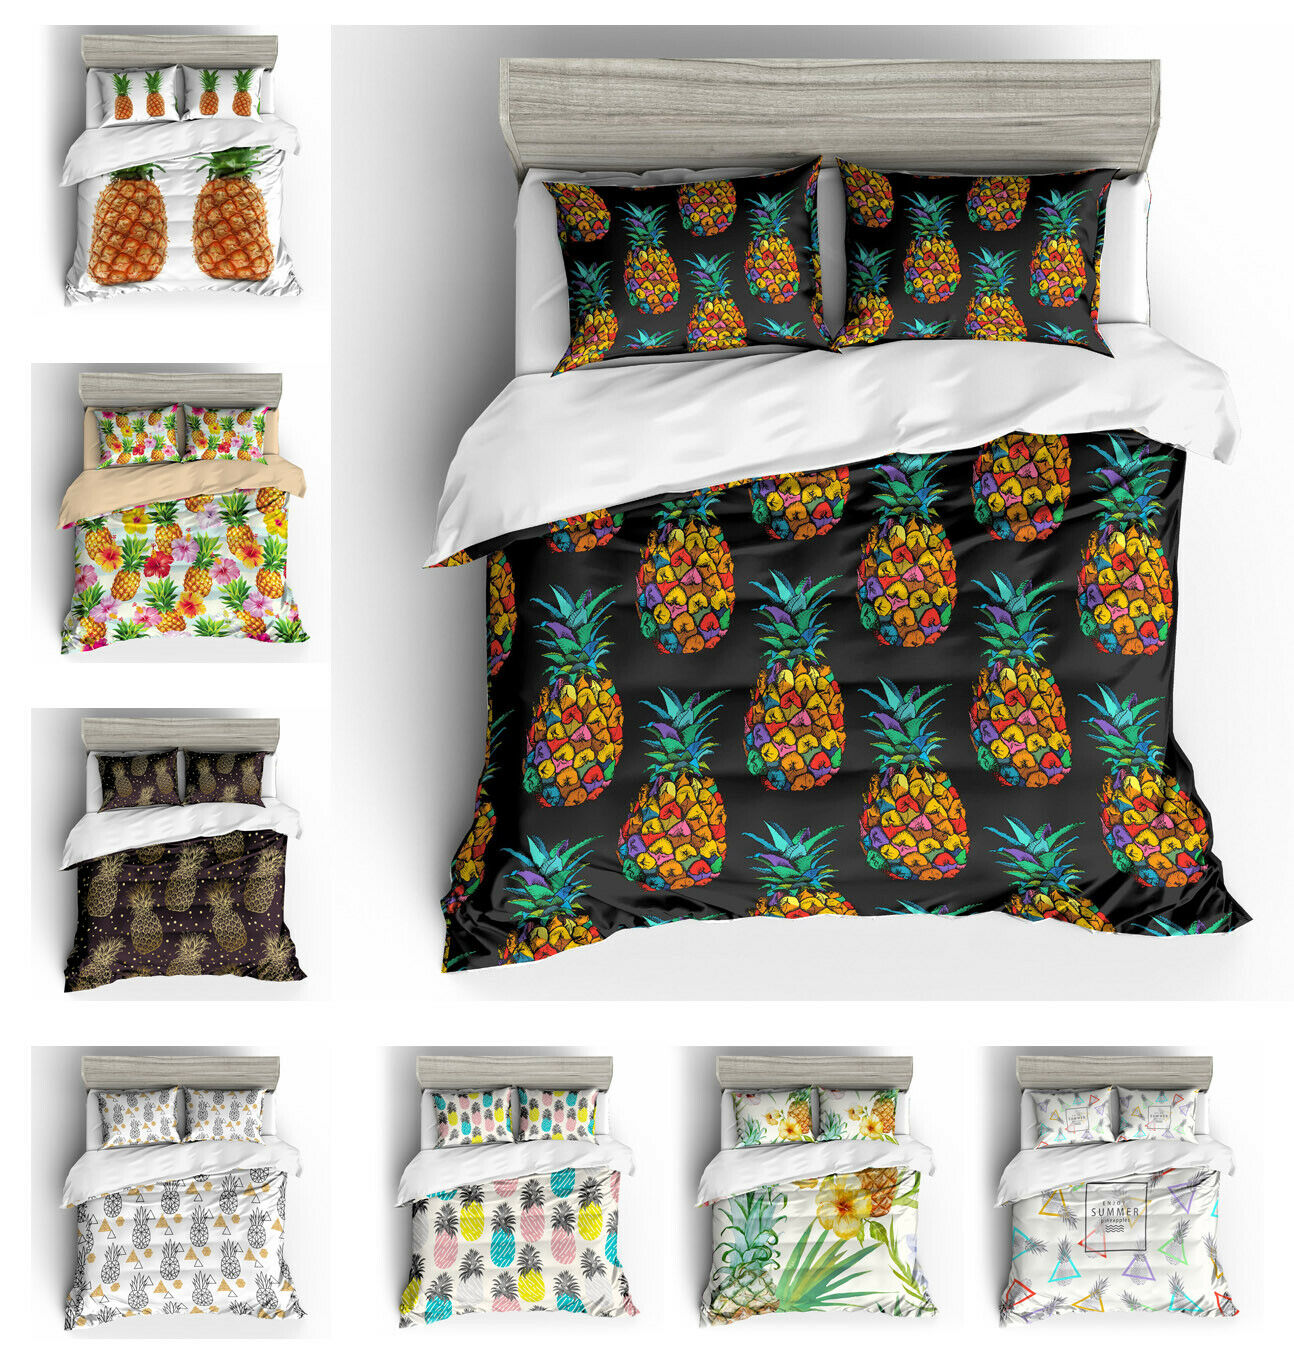 Tropical Plant Flower Pineapple Bedding Duvet Cover Set+Pillow Case US AU EU